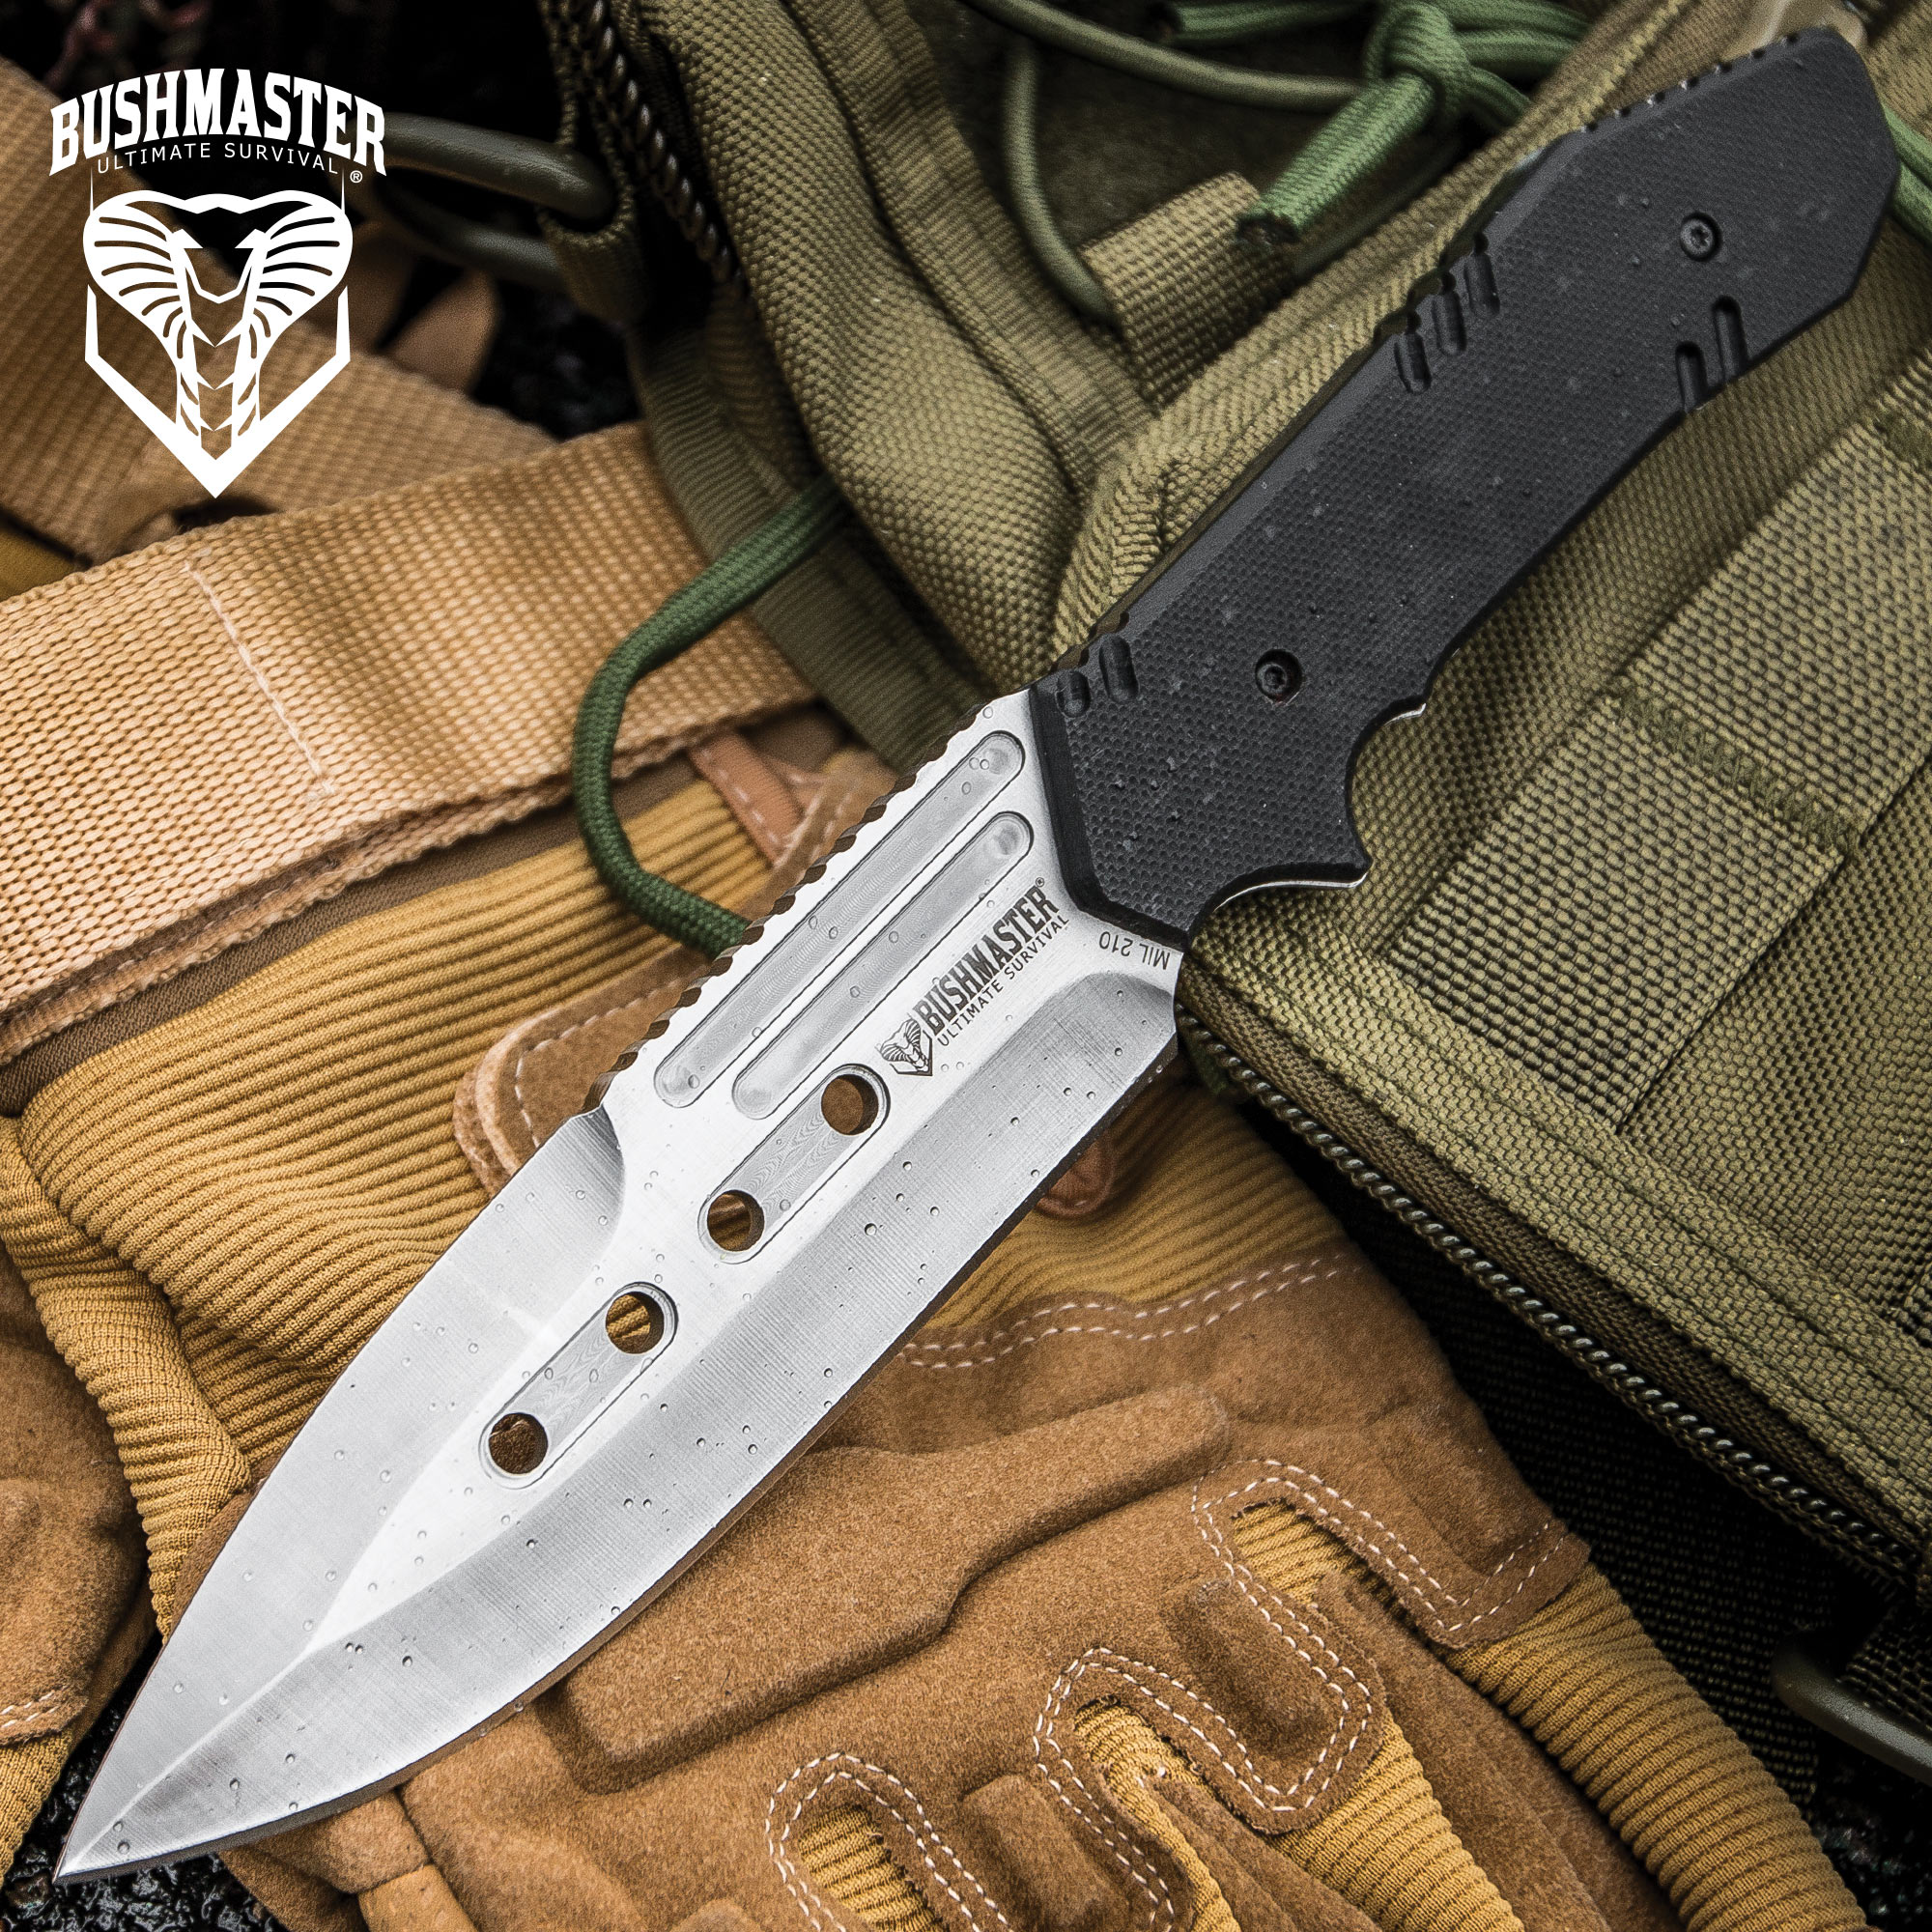 Bushmaster Mission Ready Fixed Blade Knife